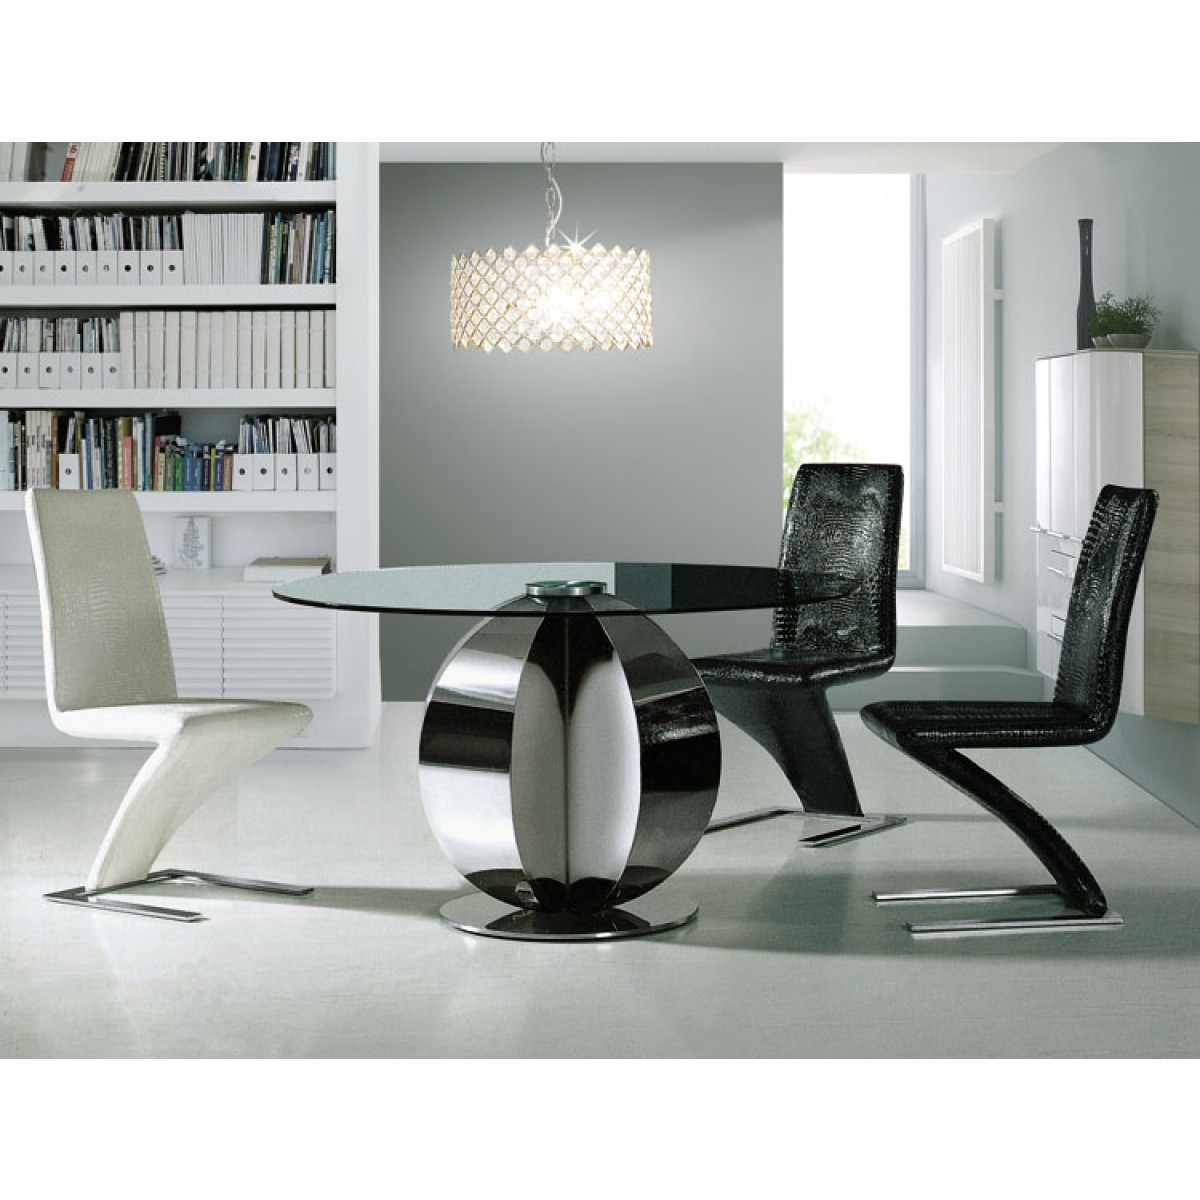 Superbe table design giro pop for Table design ronde